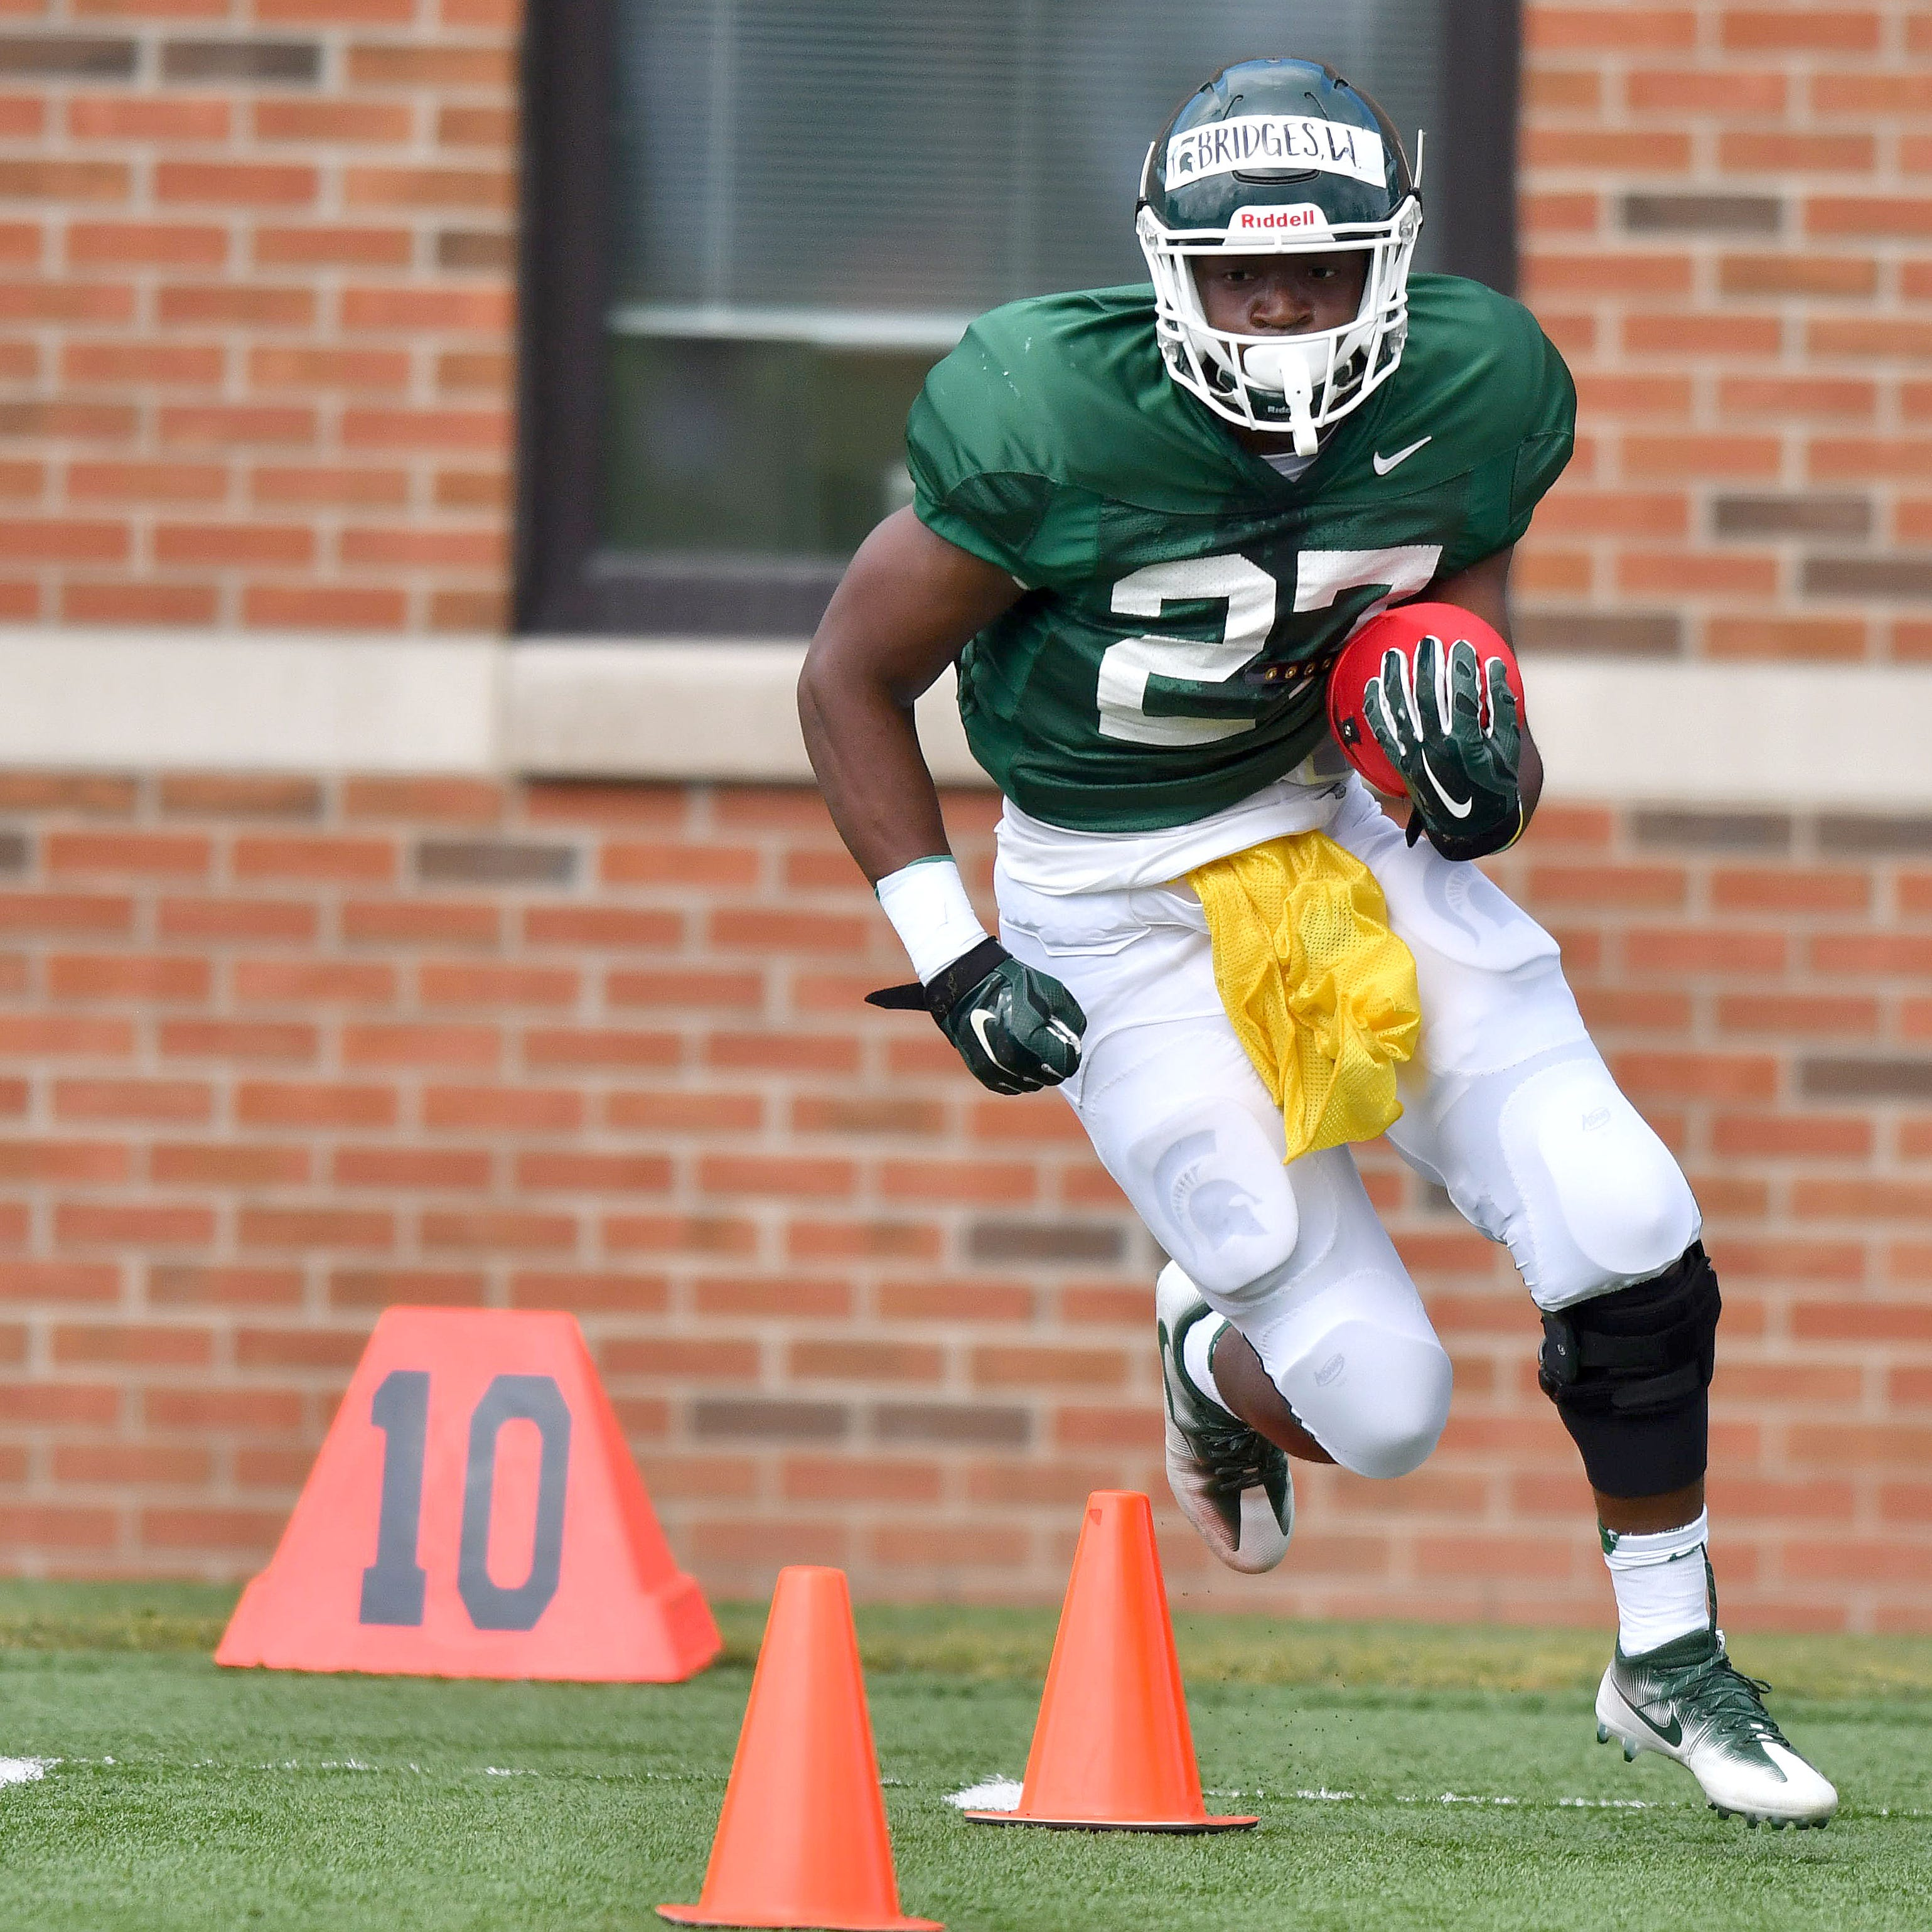 Michigan State's Weston Bridges rekindles love for football following ACL injuries